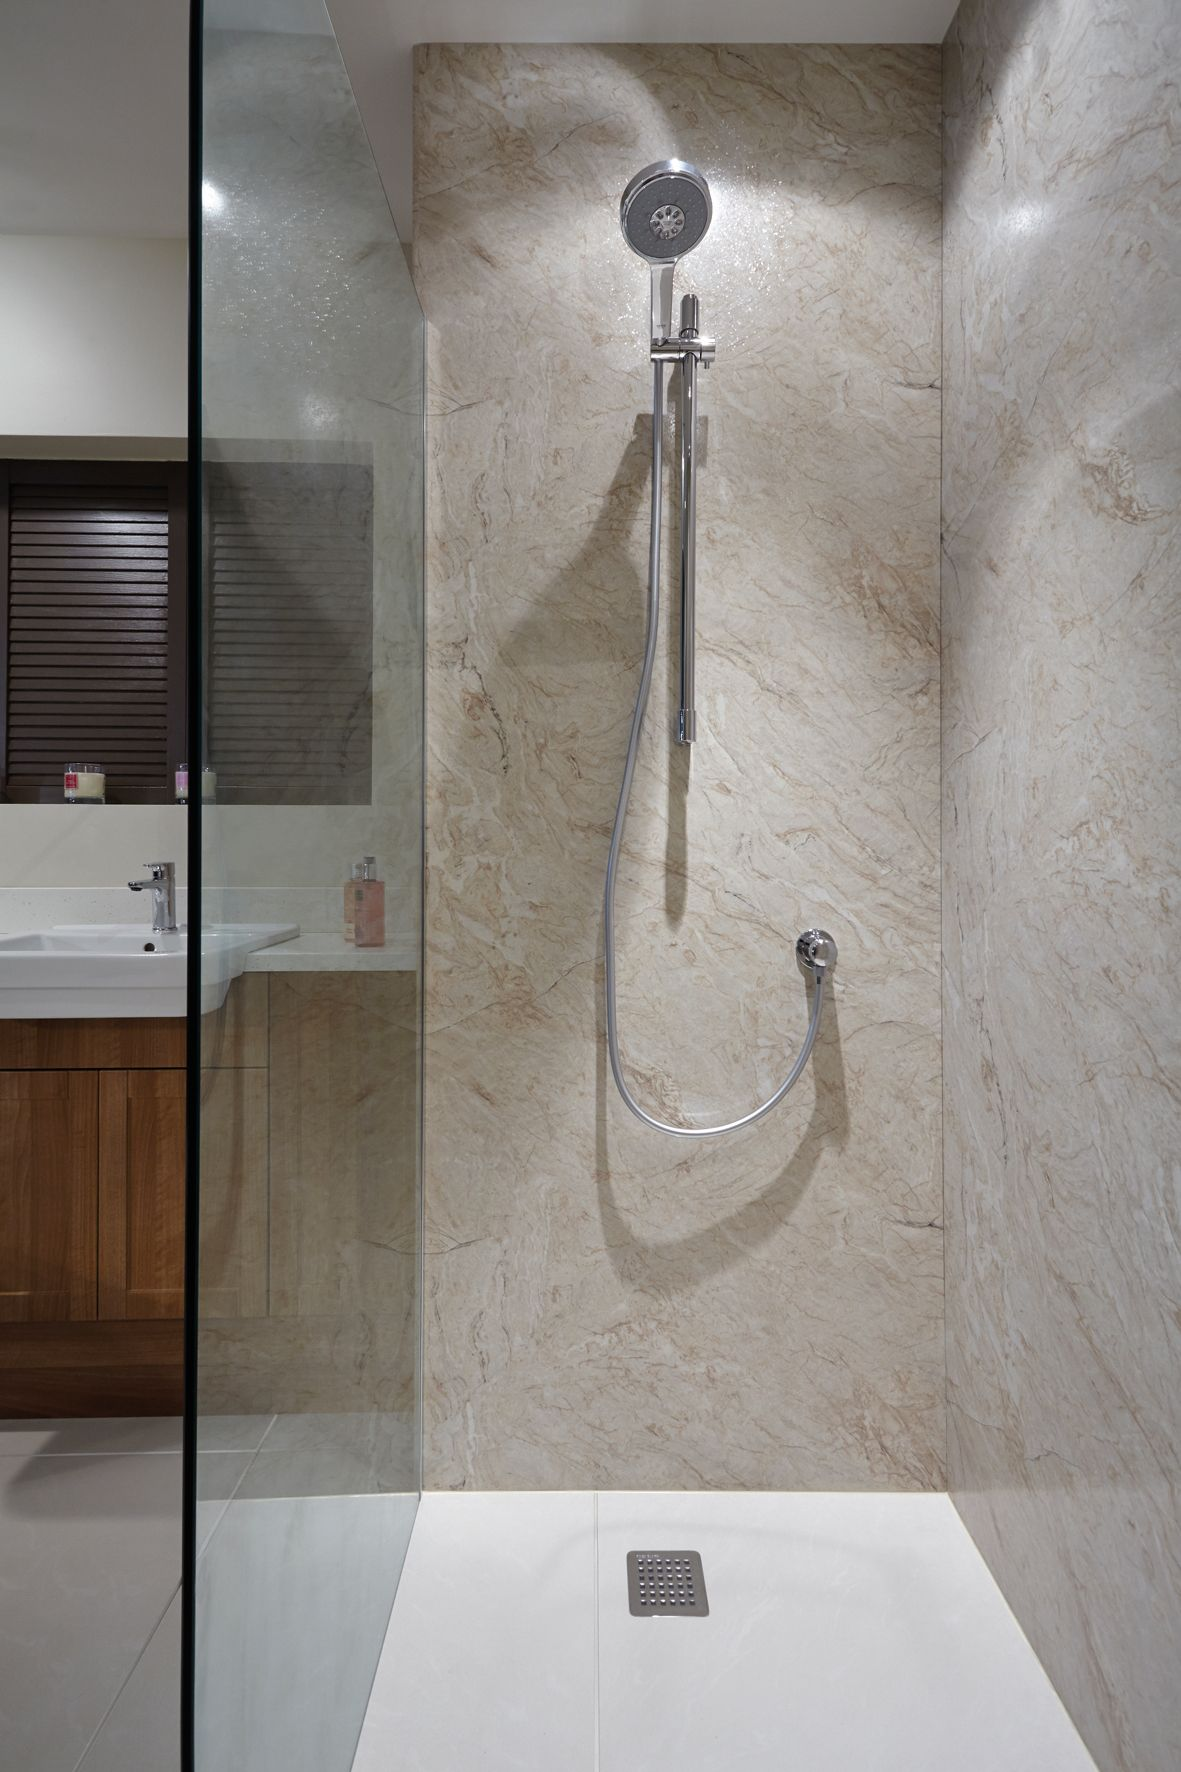 Nuance Bathroom Wall Boards Are Waterproof. Buy Nuance Shower Wall Boards  Online With FREE UK Delivery.